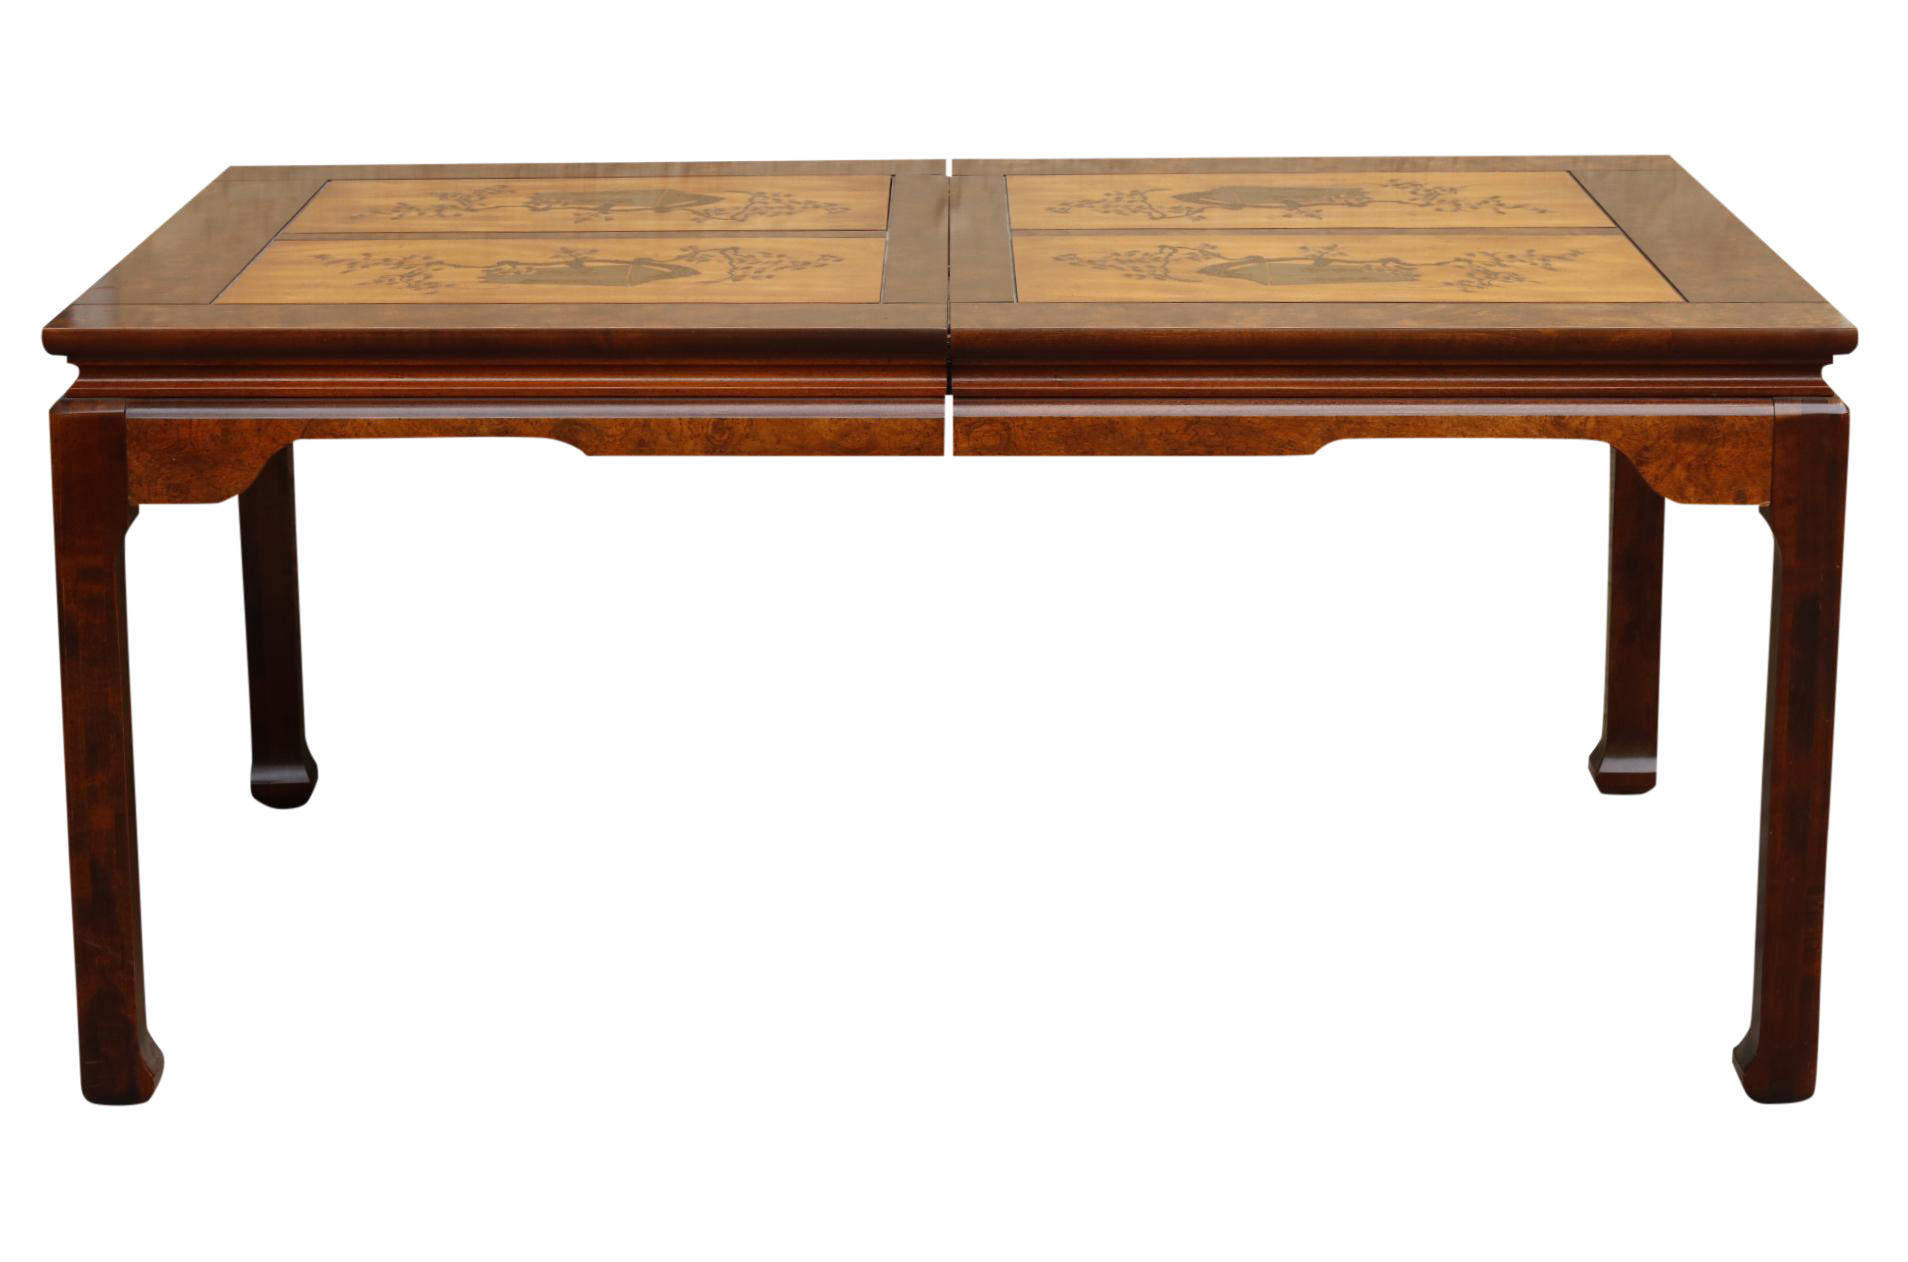 Ming Style Dining Table by Bassett Furniture Company  : ming style dining table by bassett furniture company 9866 from www.chairish.com size 1908 x 1262 png 669kB